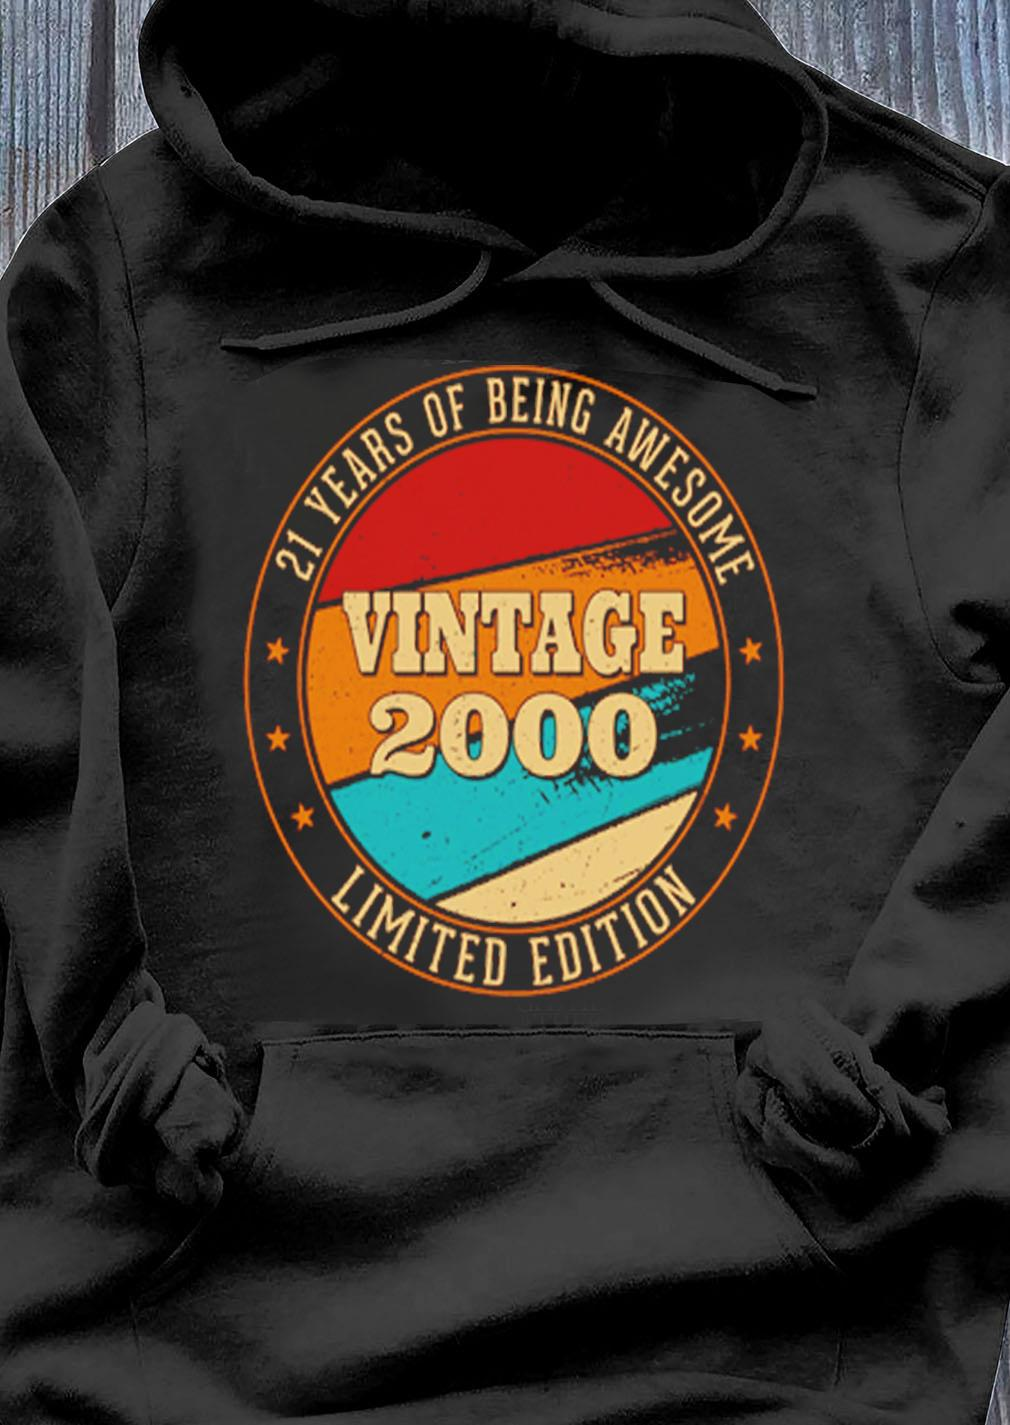 21 Years Of Being Awesome Vintage 2000 Limited Edition Shirt Hoodie